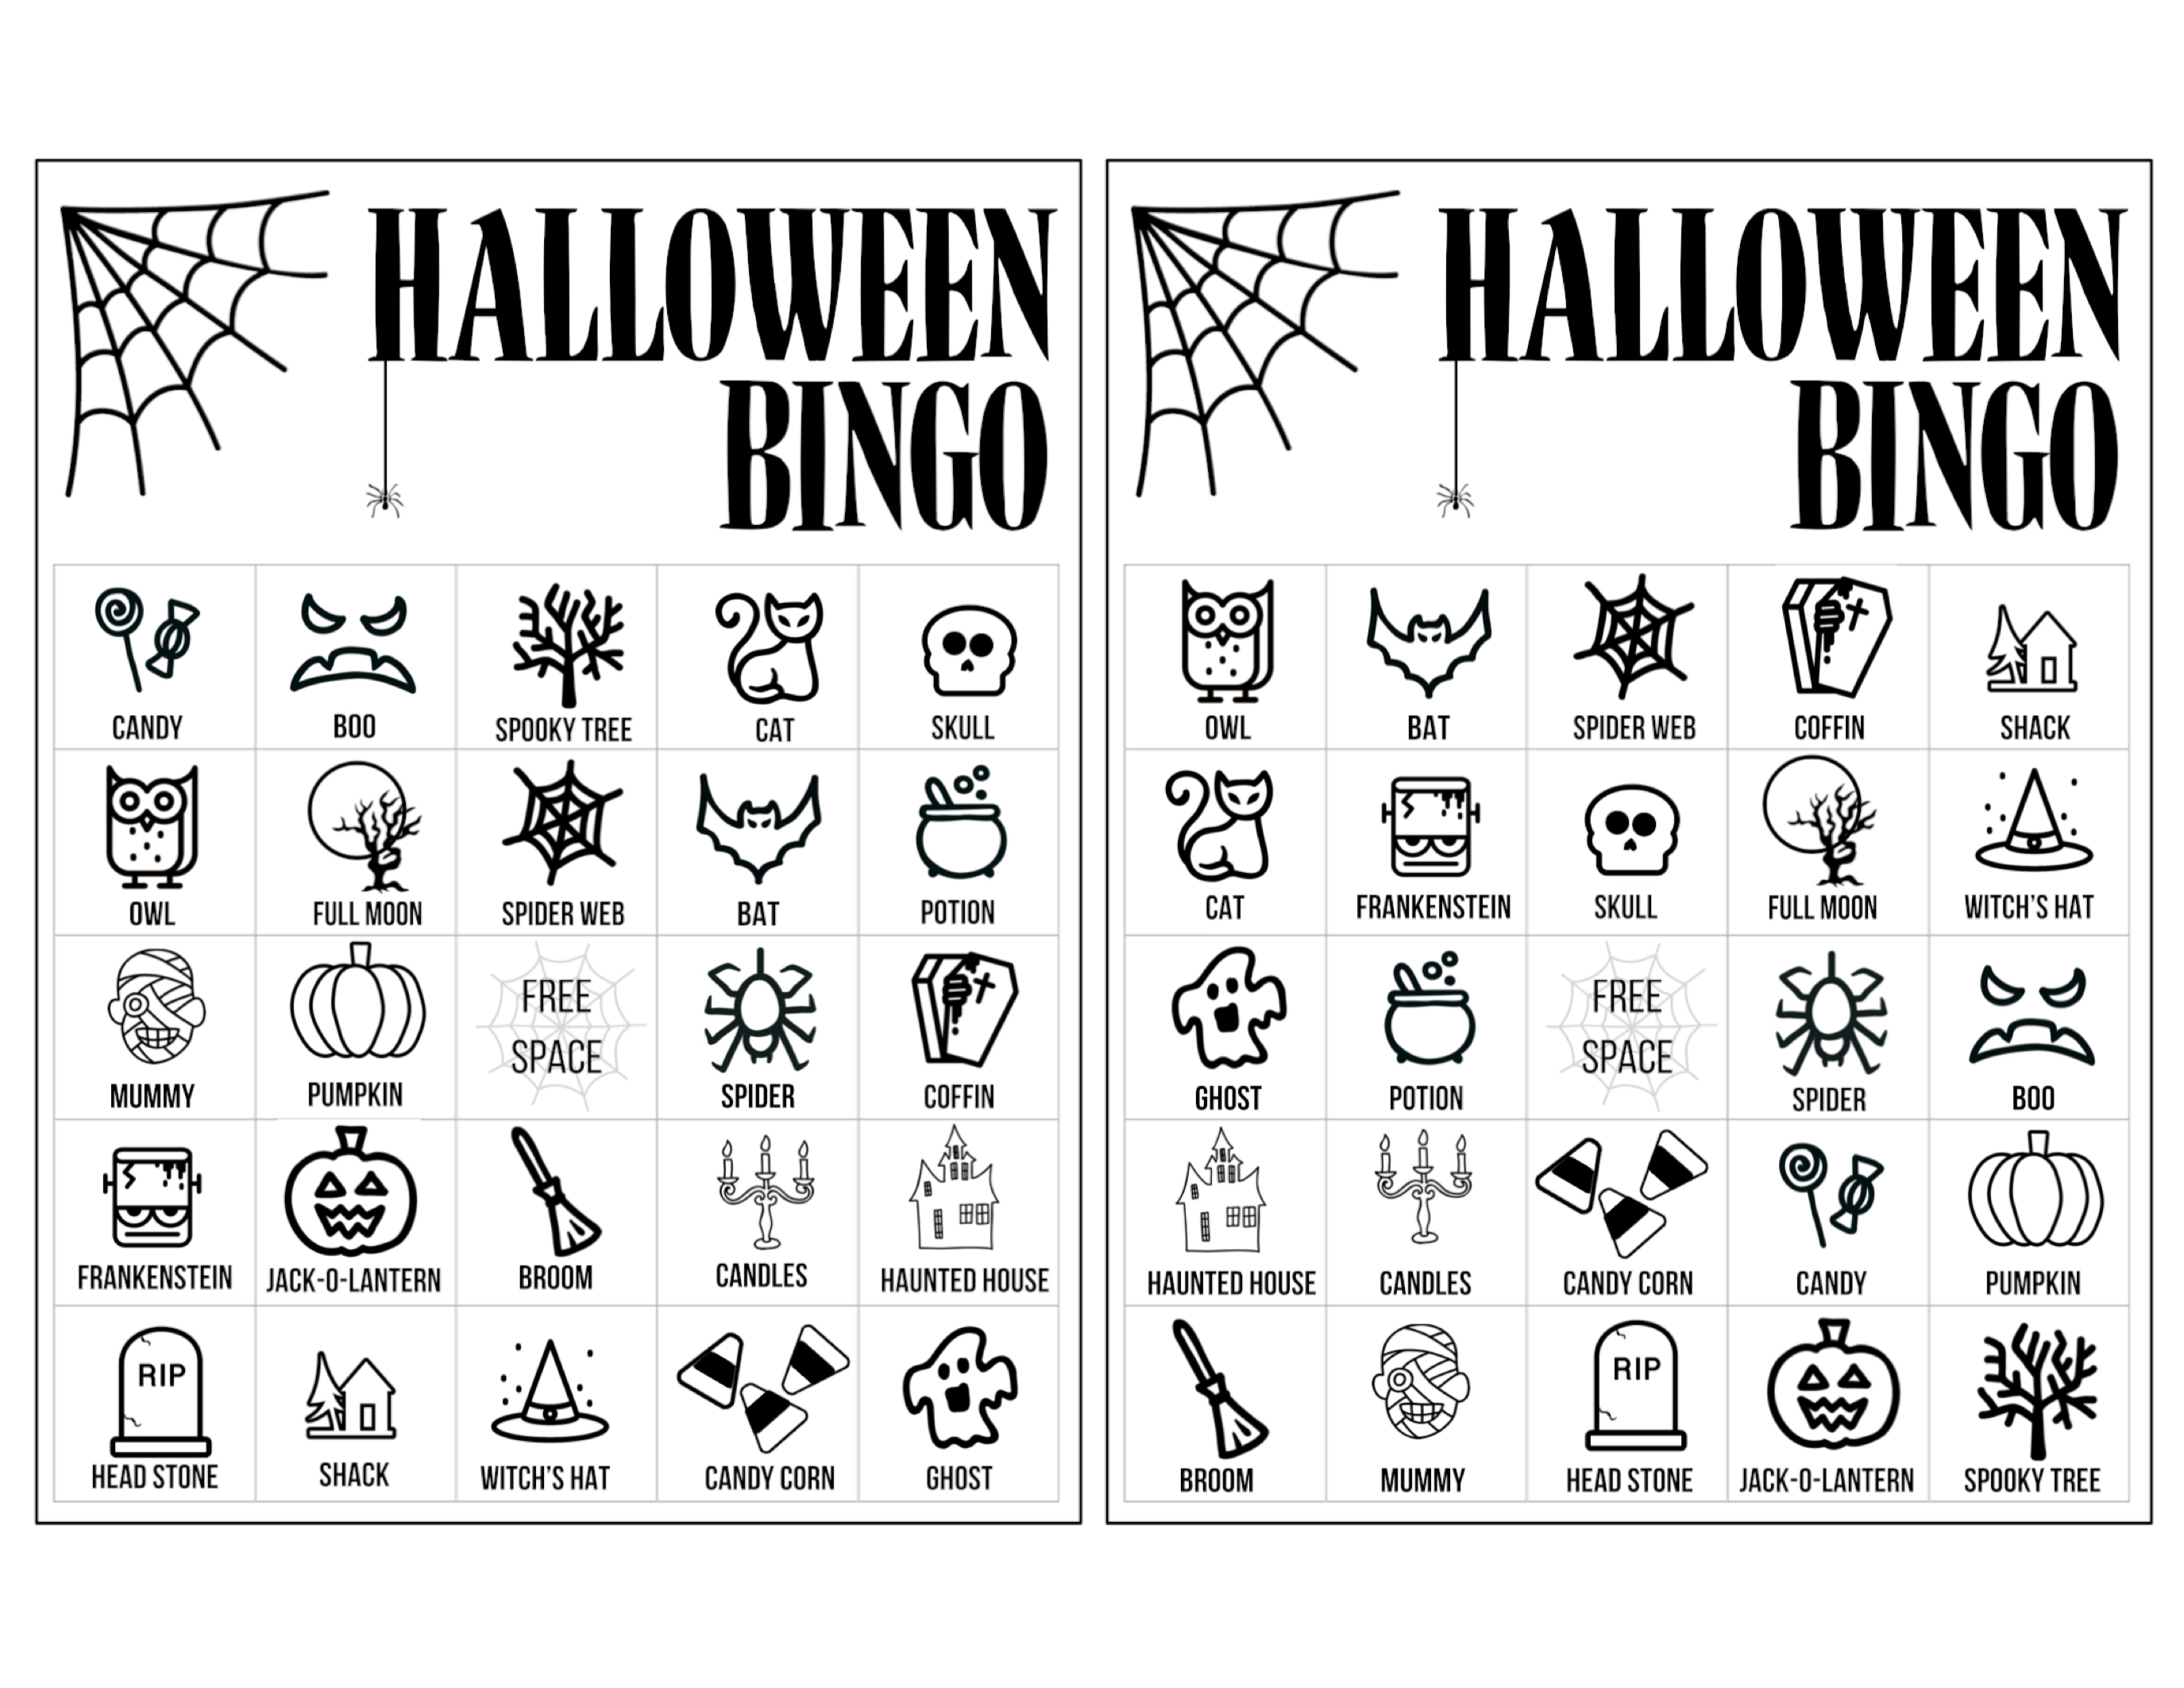 Halloween Bingo Printable Game Cards Template Paper Trail Design